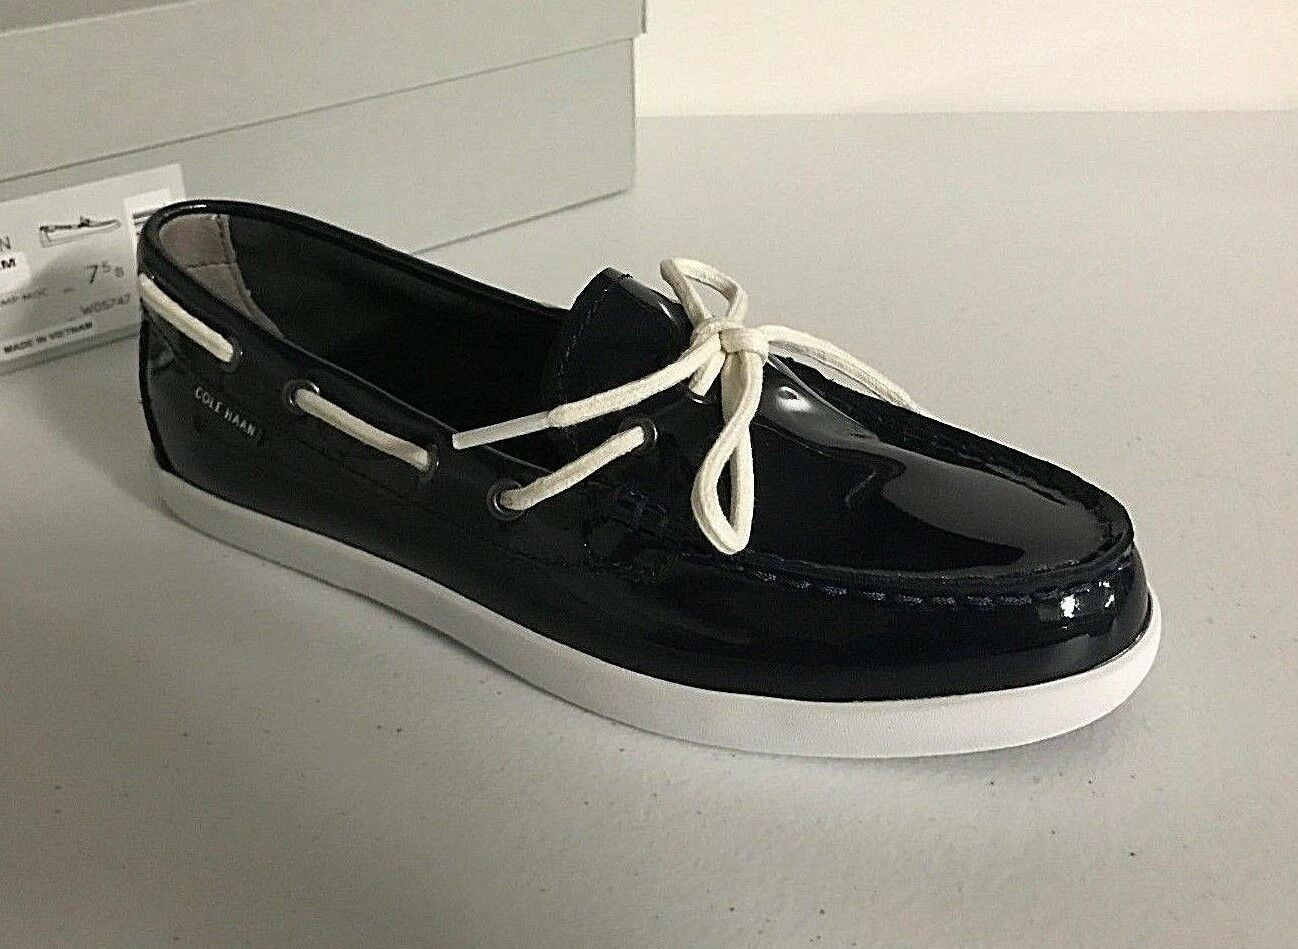 COLE HAAN Womens' Nantucket Camp Moc Patent Leather Boat shoes Navy bluee 7.5 US